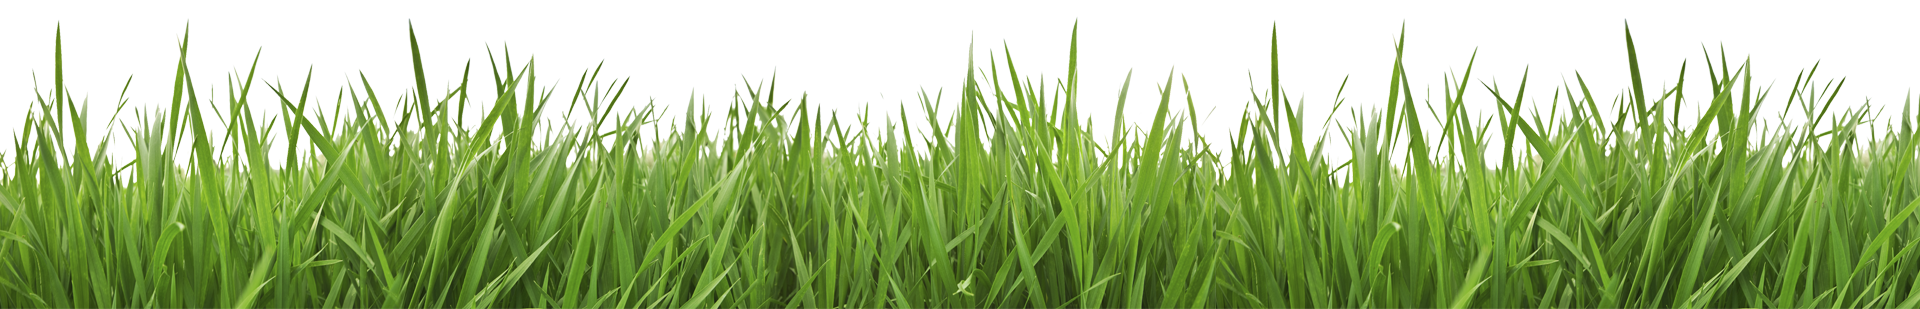 clipart freeuse download Line free on dumielauxepices. Lawn care clipart realistic grass.